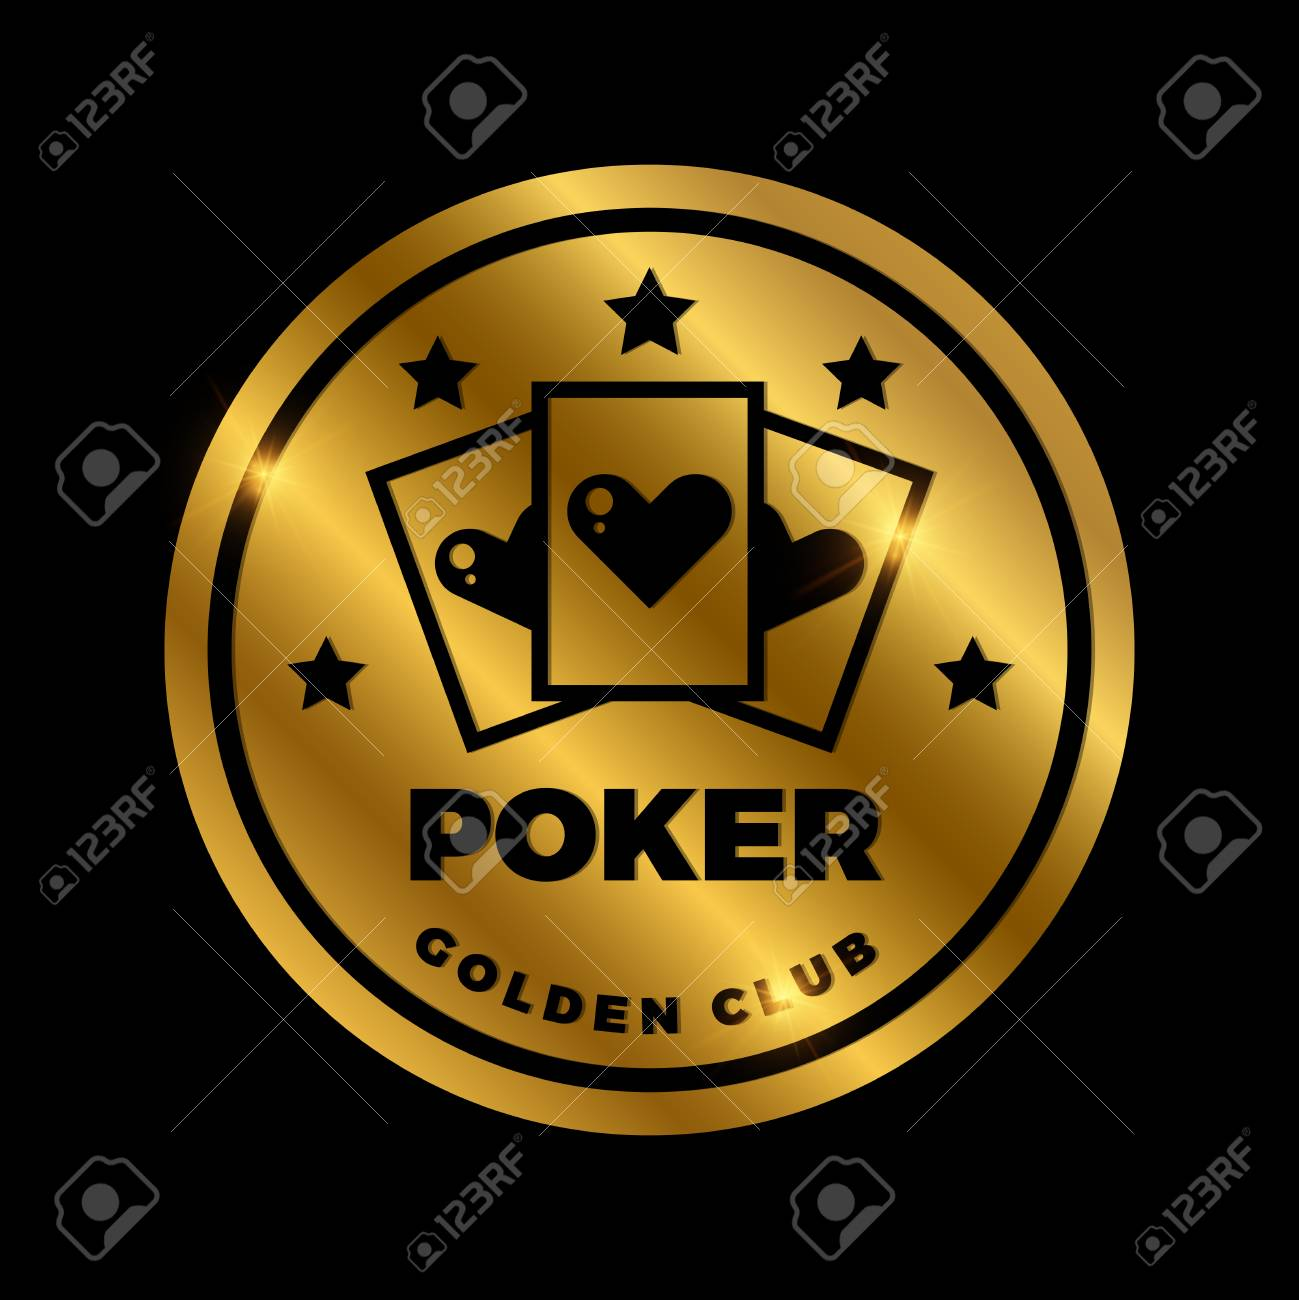 Shine Golden Poker Label Design Golden Vector Casino Icon Illustration Royalty Free Cliparts Vectors And Stock Illustration Image 101060485